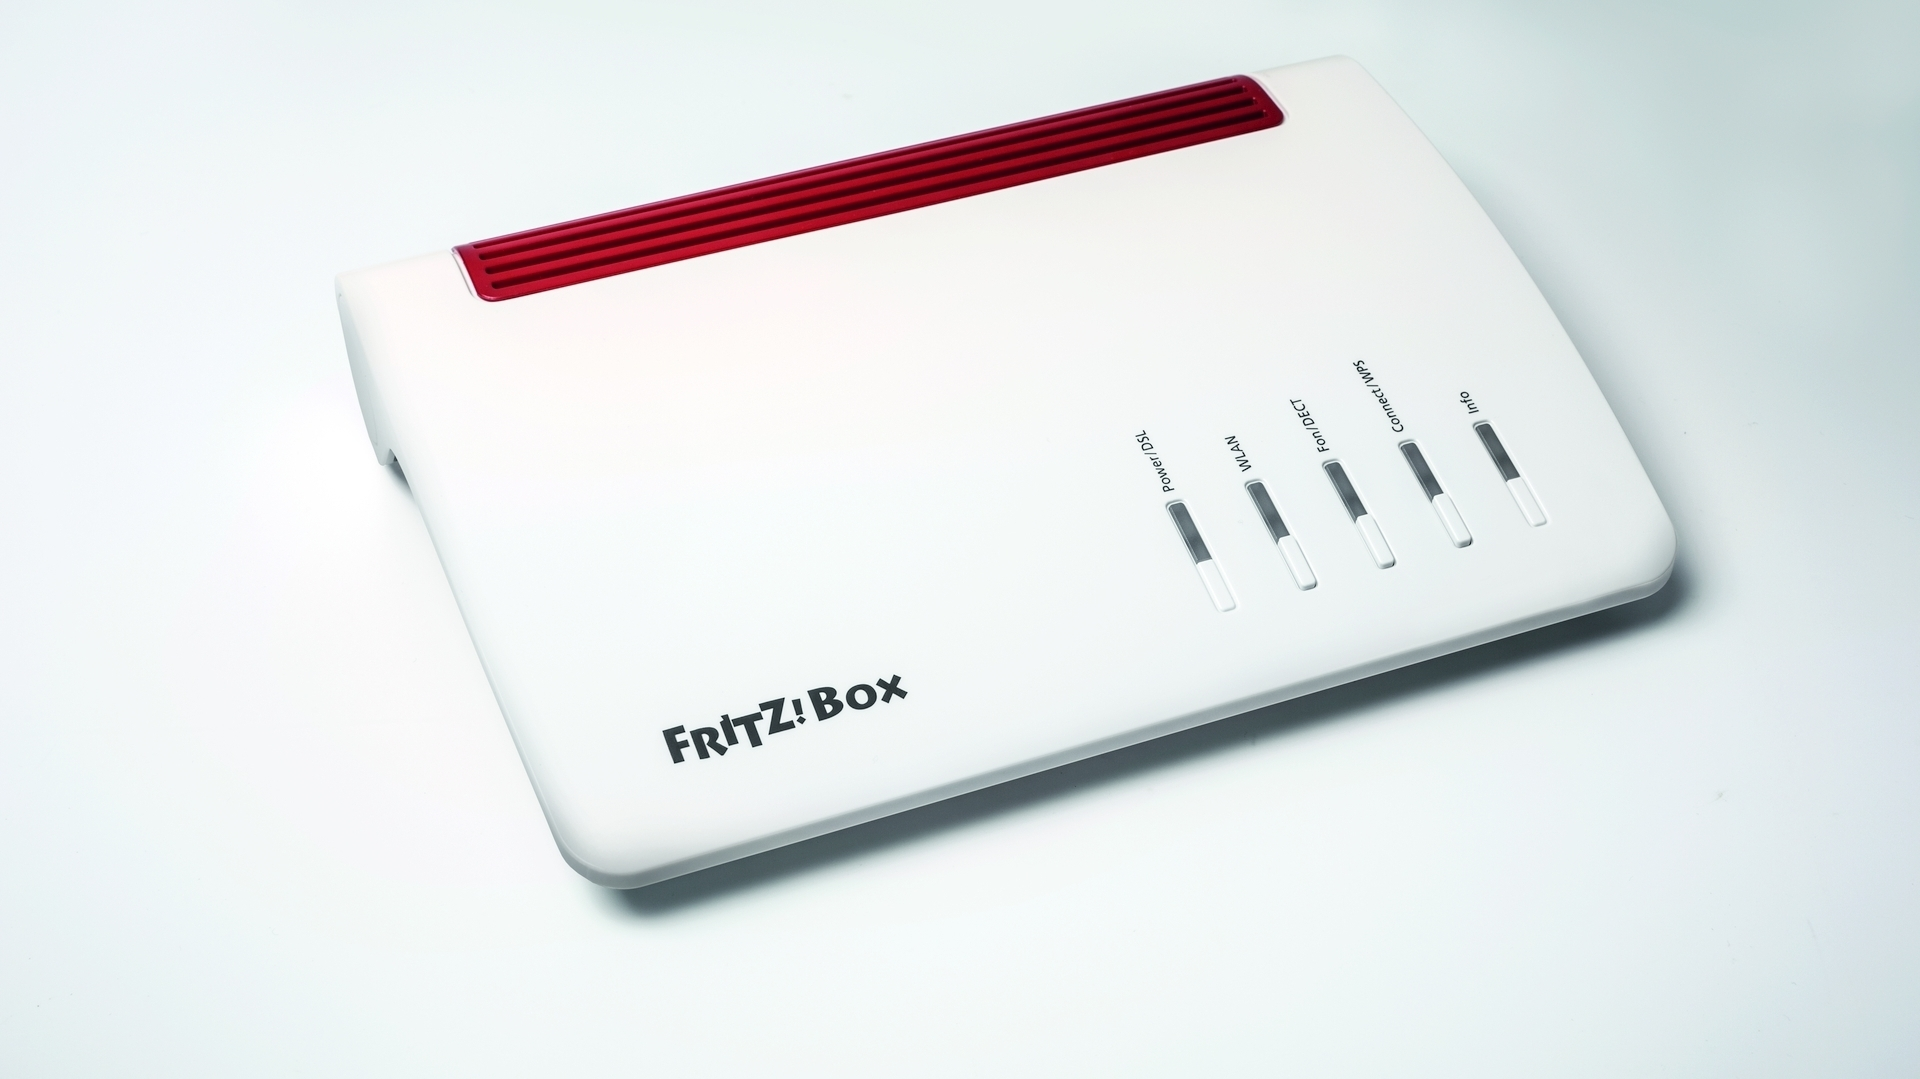 Smart Home Bewegungsmelder Fritzbox Als Smart Home Zentrale C T Magazin